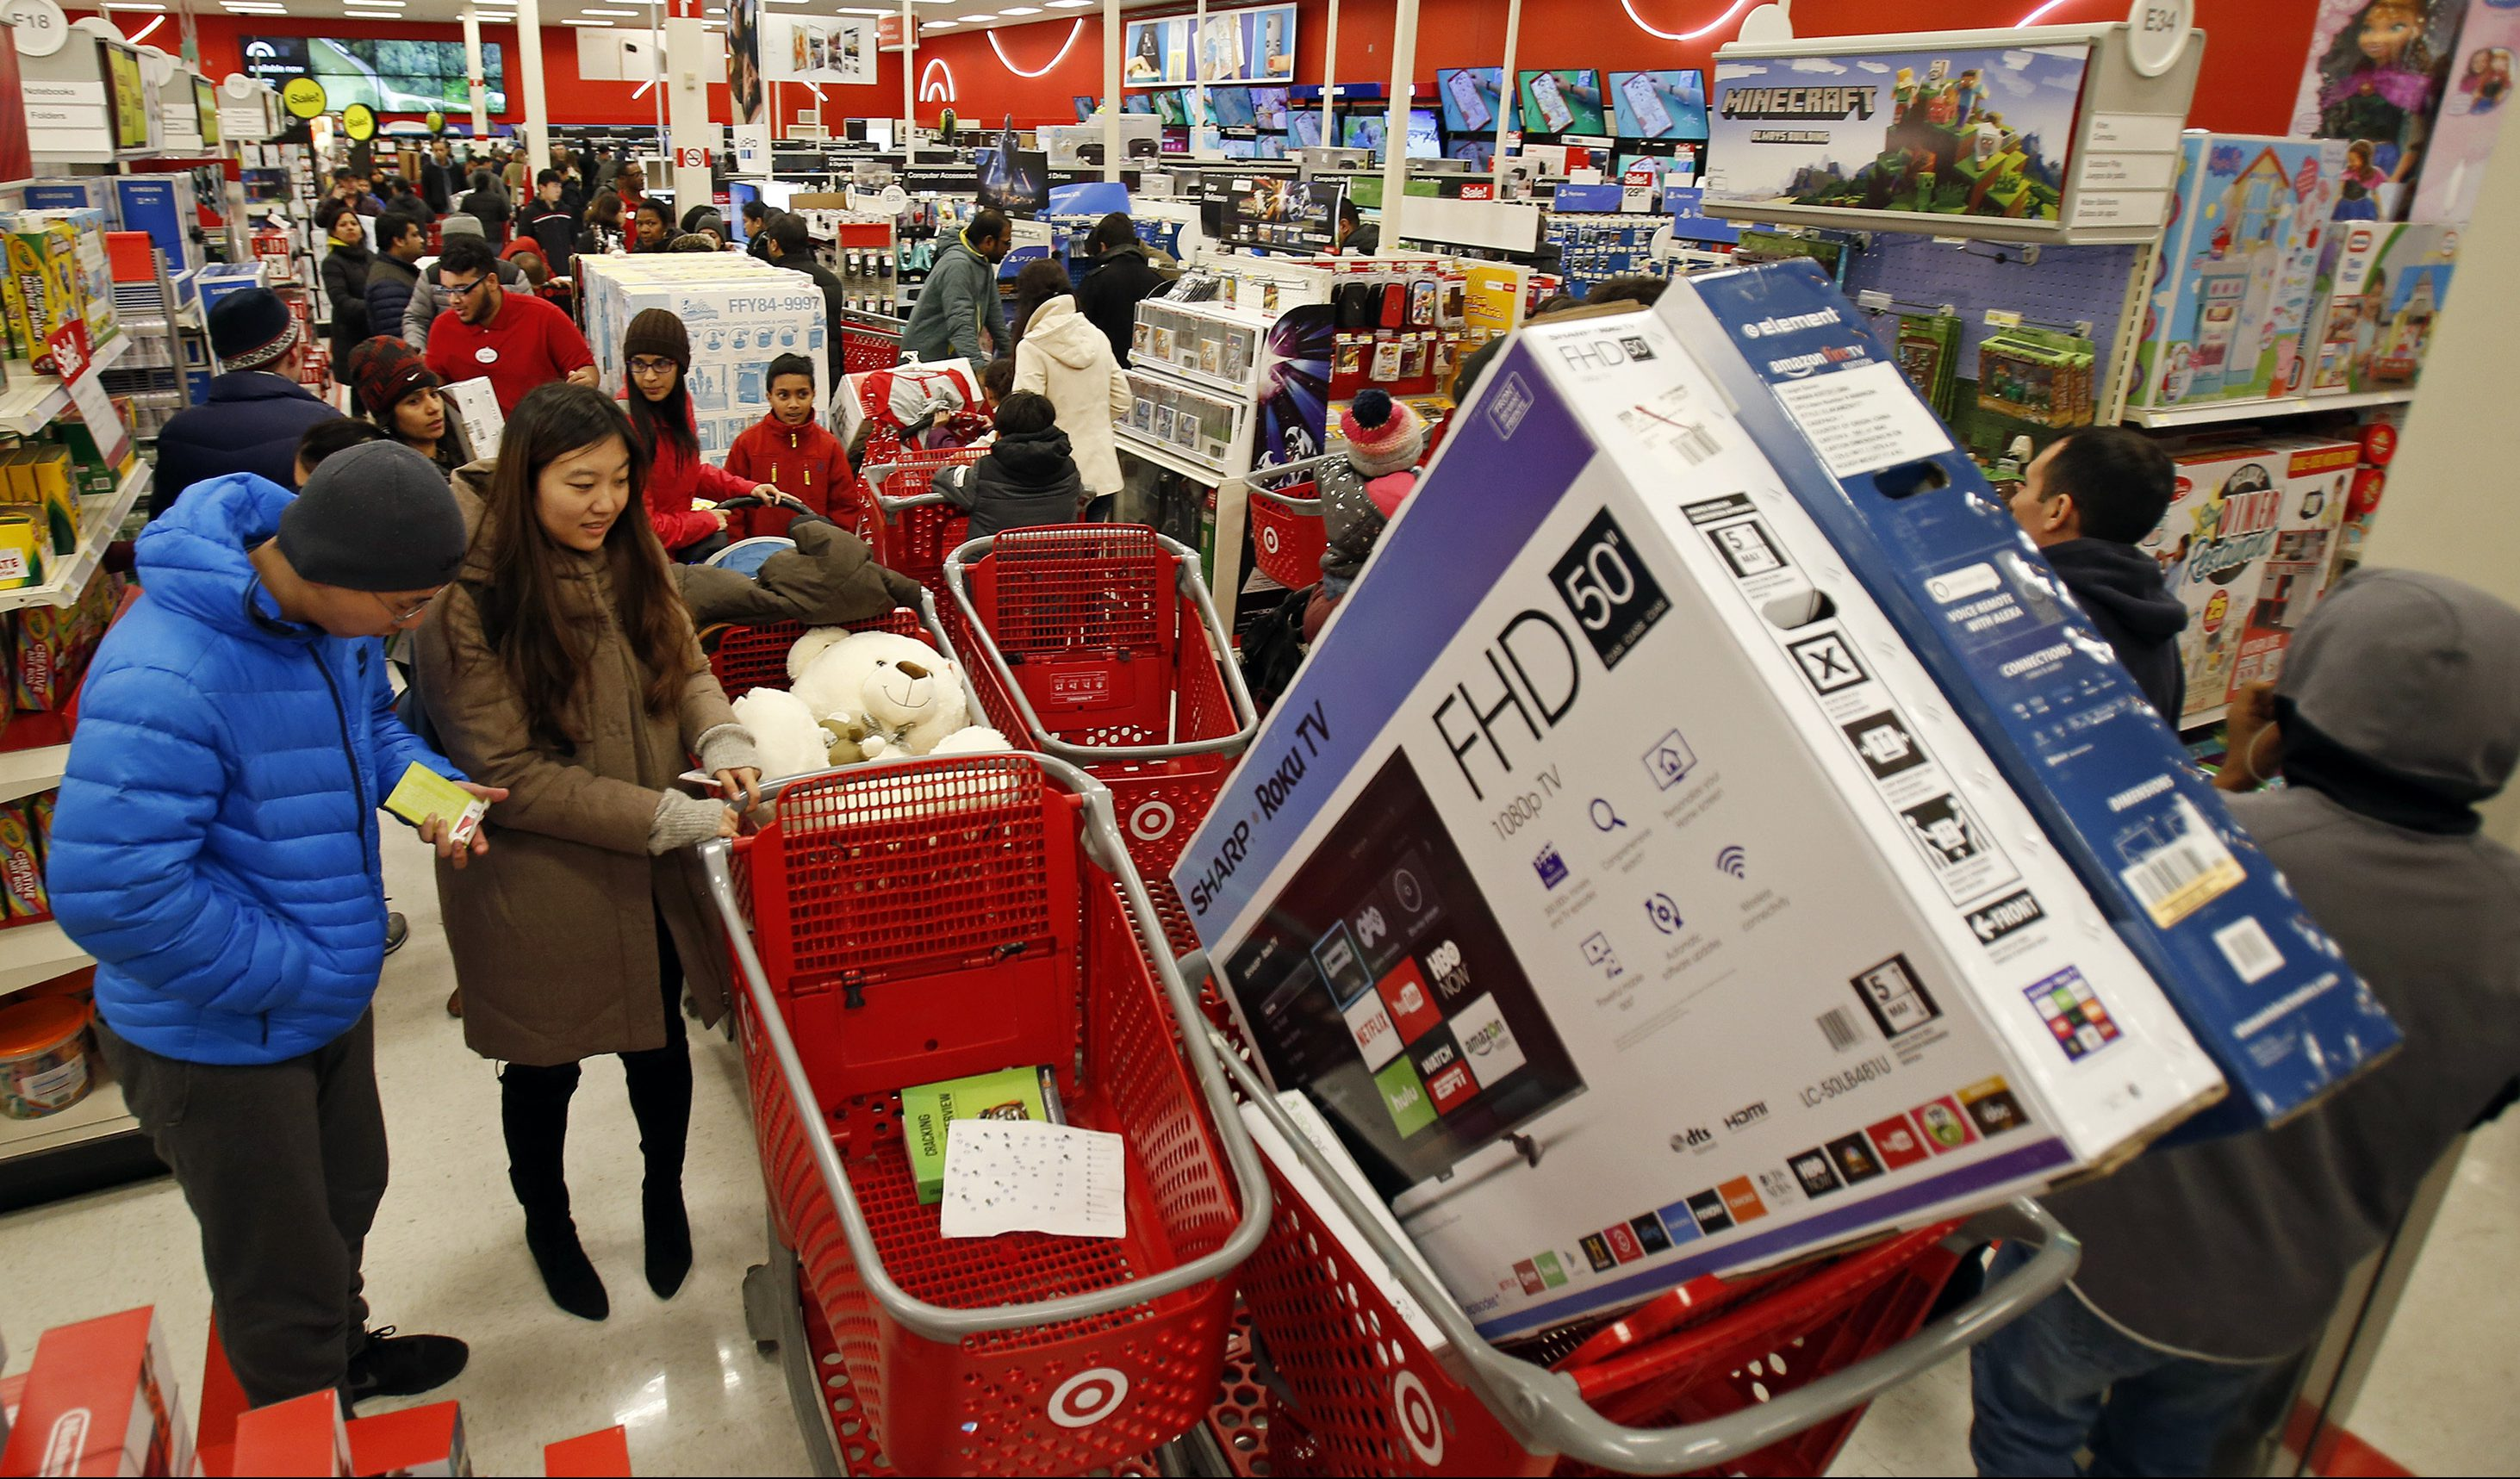 IMAGE DISTRIBUTED FOR TARGET - On Black Friday, Target offers its lowest prices of the season on items like TVs and electronics as shoppers shop on Thursday, Nov. 23, 2017, in Jersey City, N.J. (Adam Hunger/AP Images for Target)